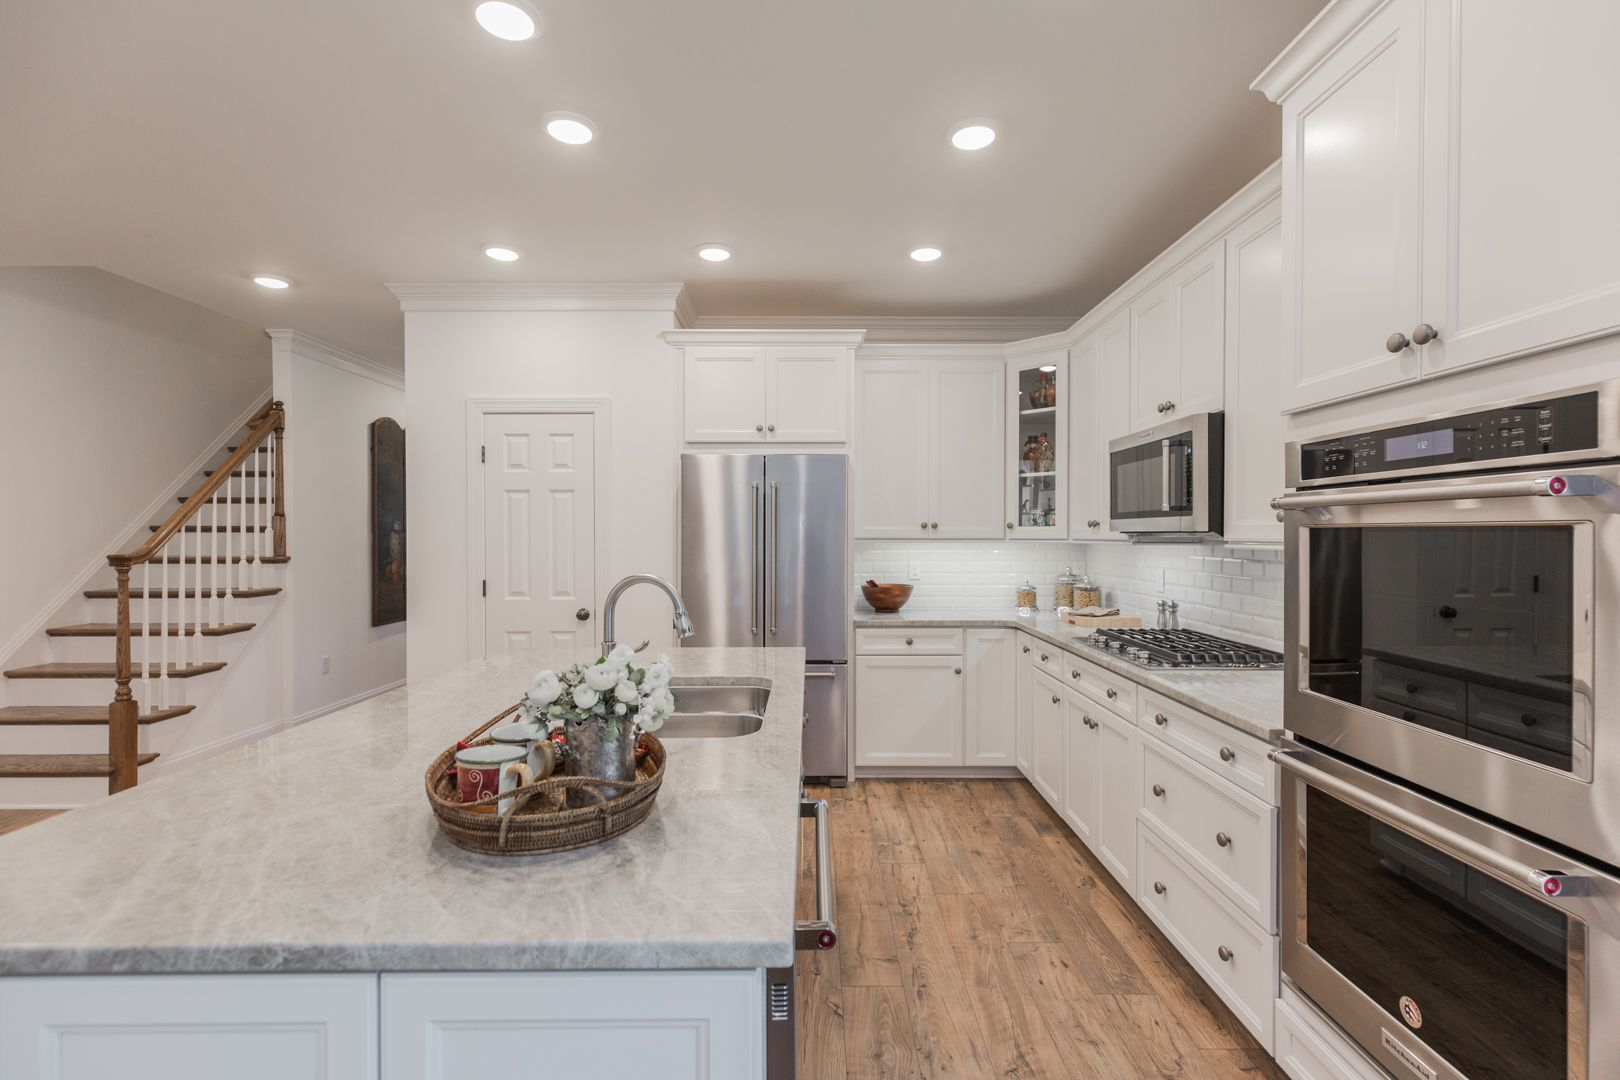 Kitchen featured in the Ashmont - Chickahominy Falls By Boone Homes, Inc.